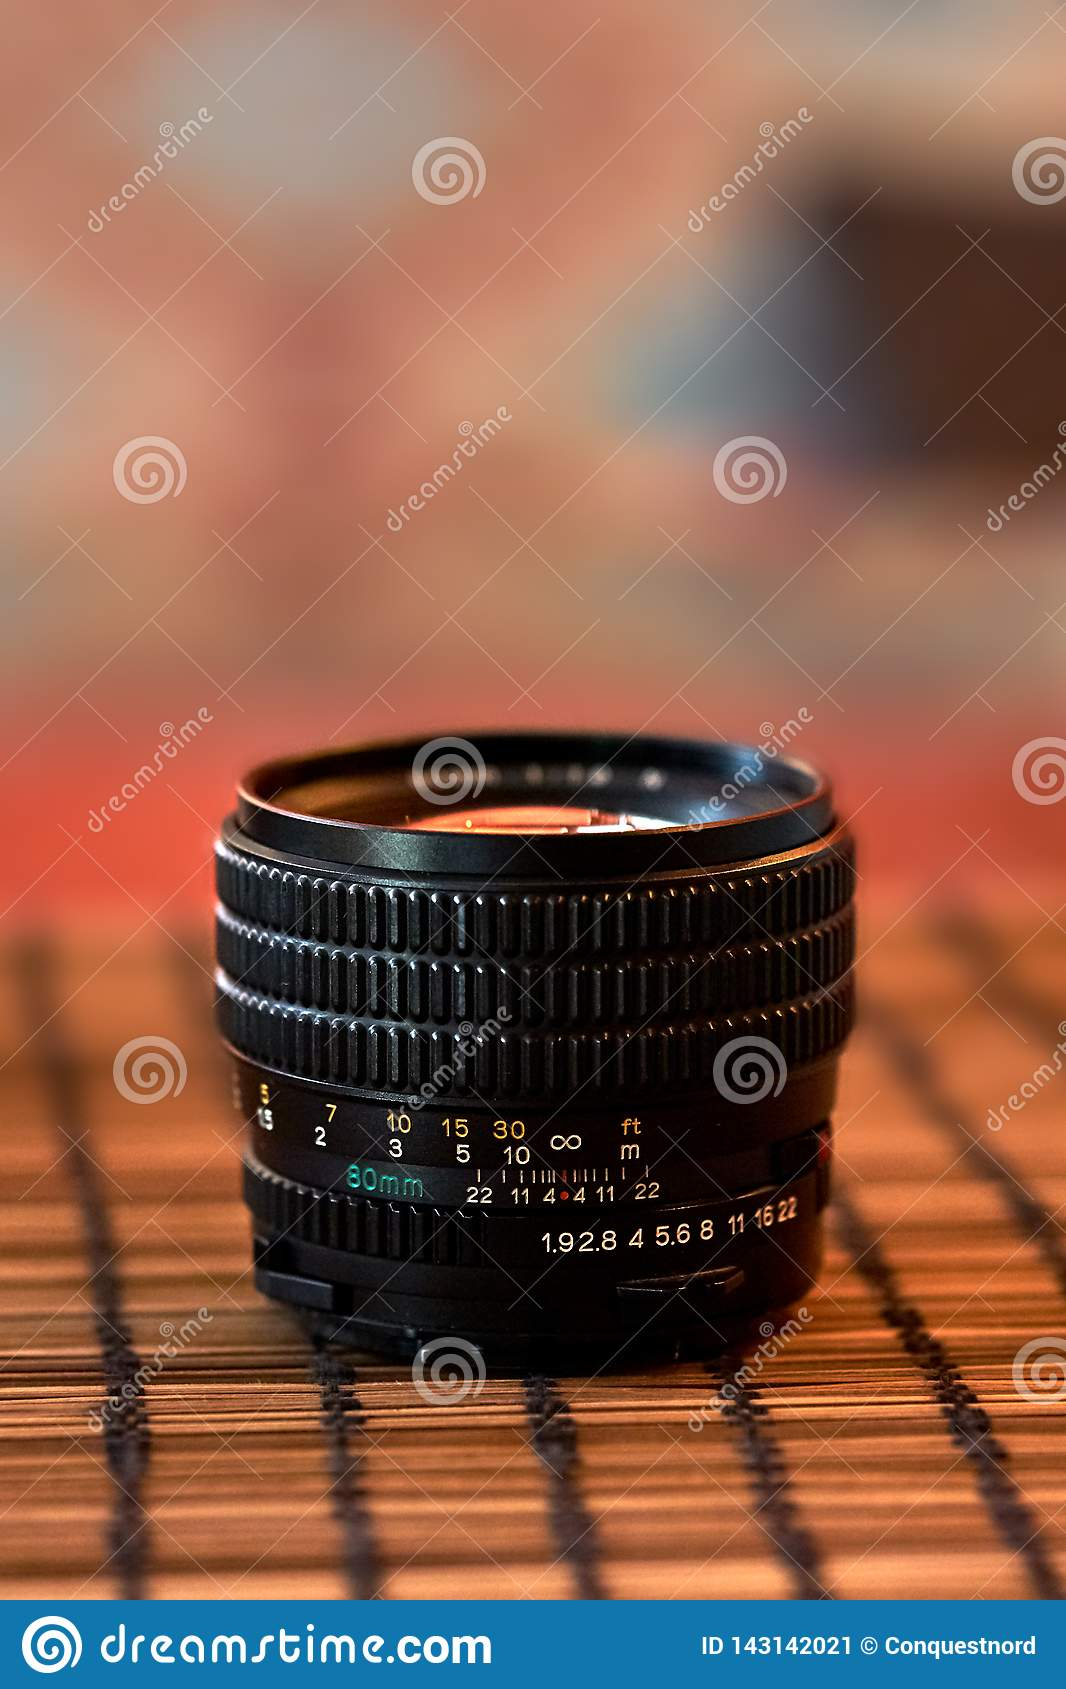 Mamiya lens is on the table on a blurred background.